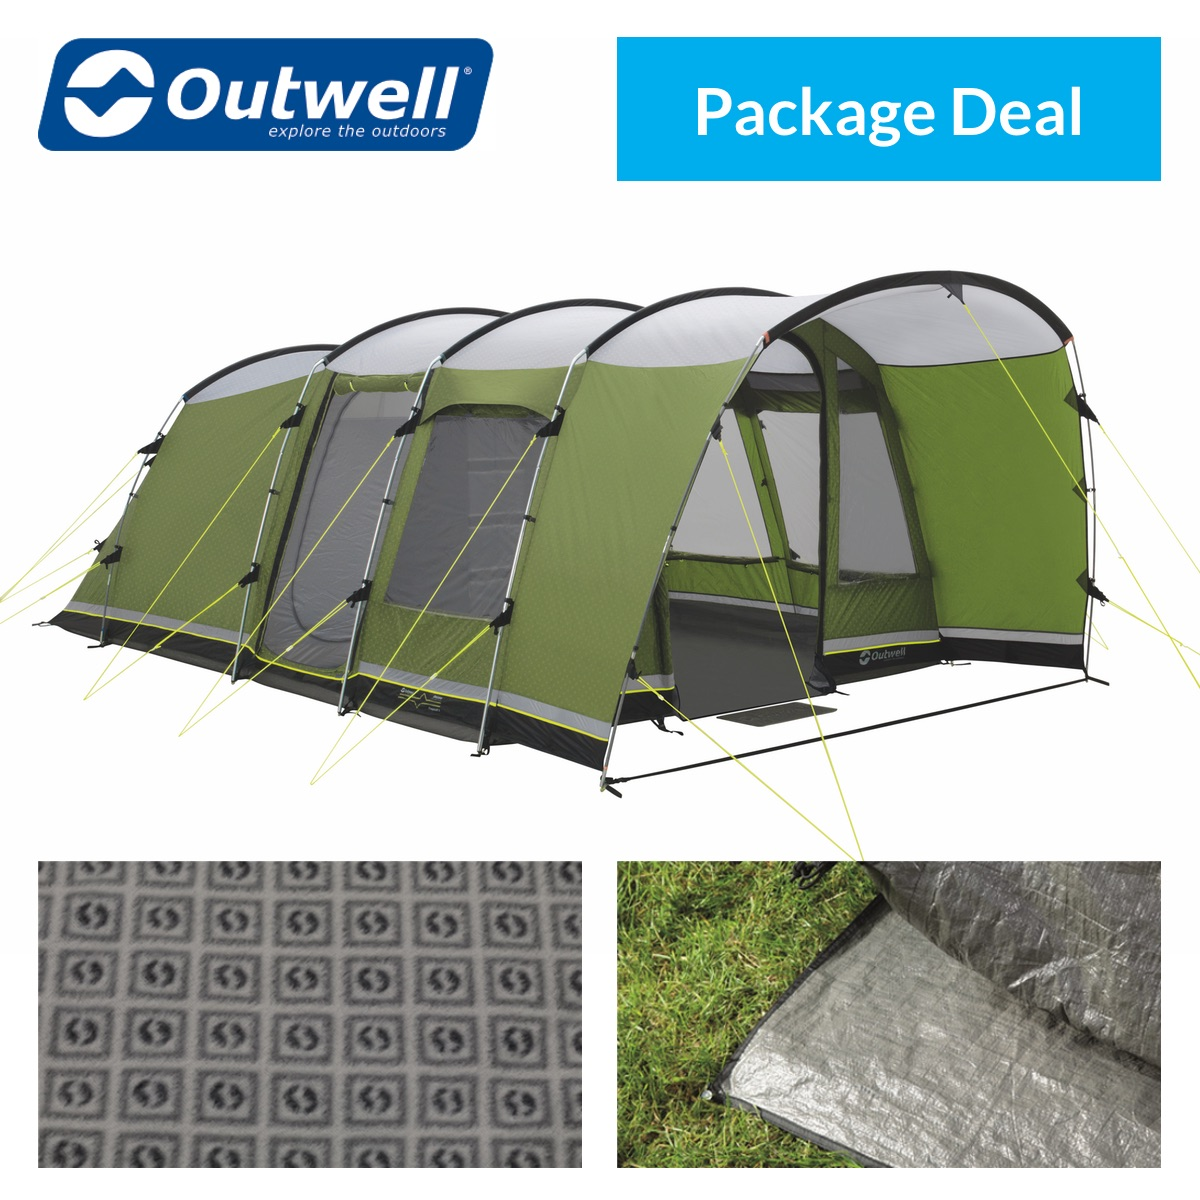 Outwell Flagstaff 5 Tent Package Deal  sc 1 st  Purely Outdoors & Outwell Flagstaff 5 Tent | Purely Outdoors